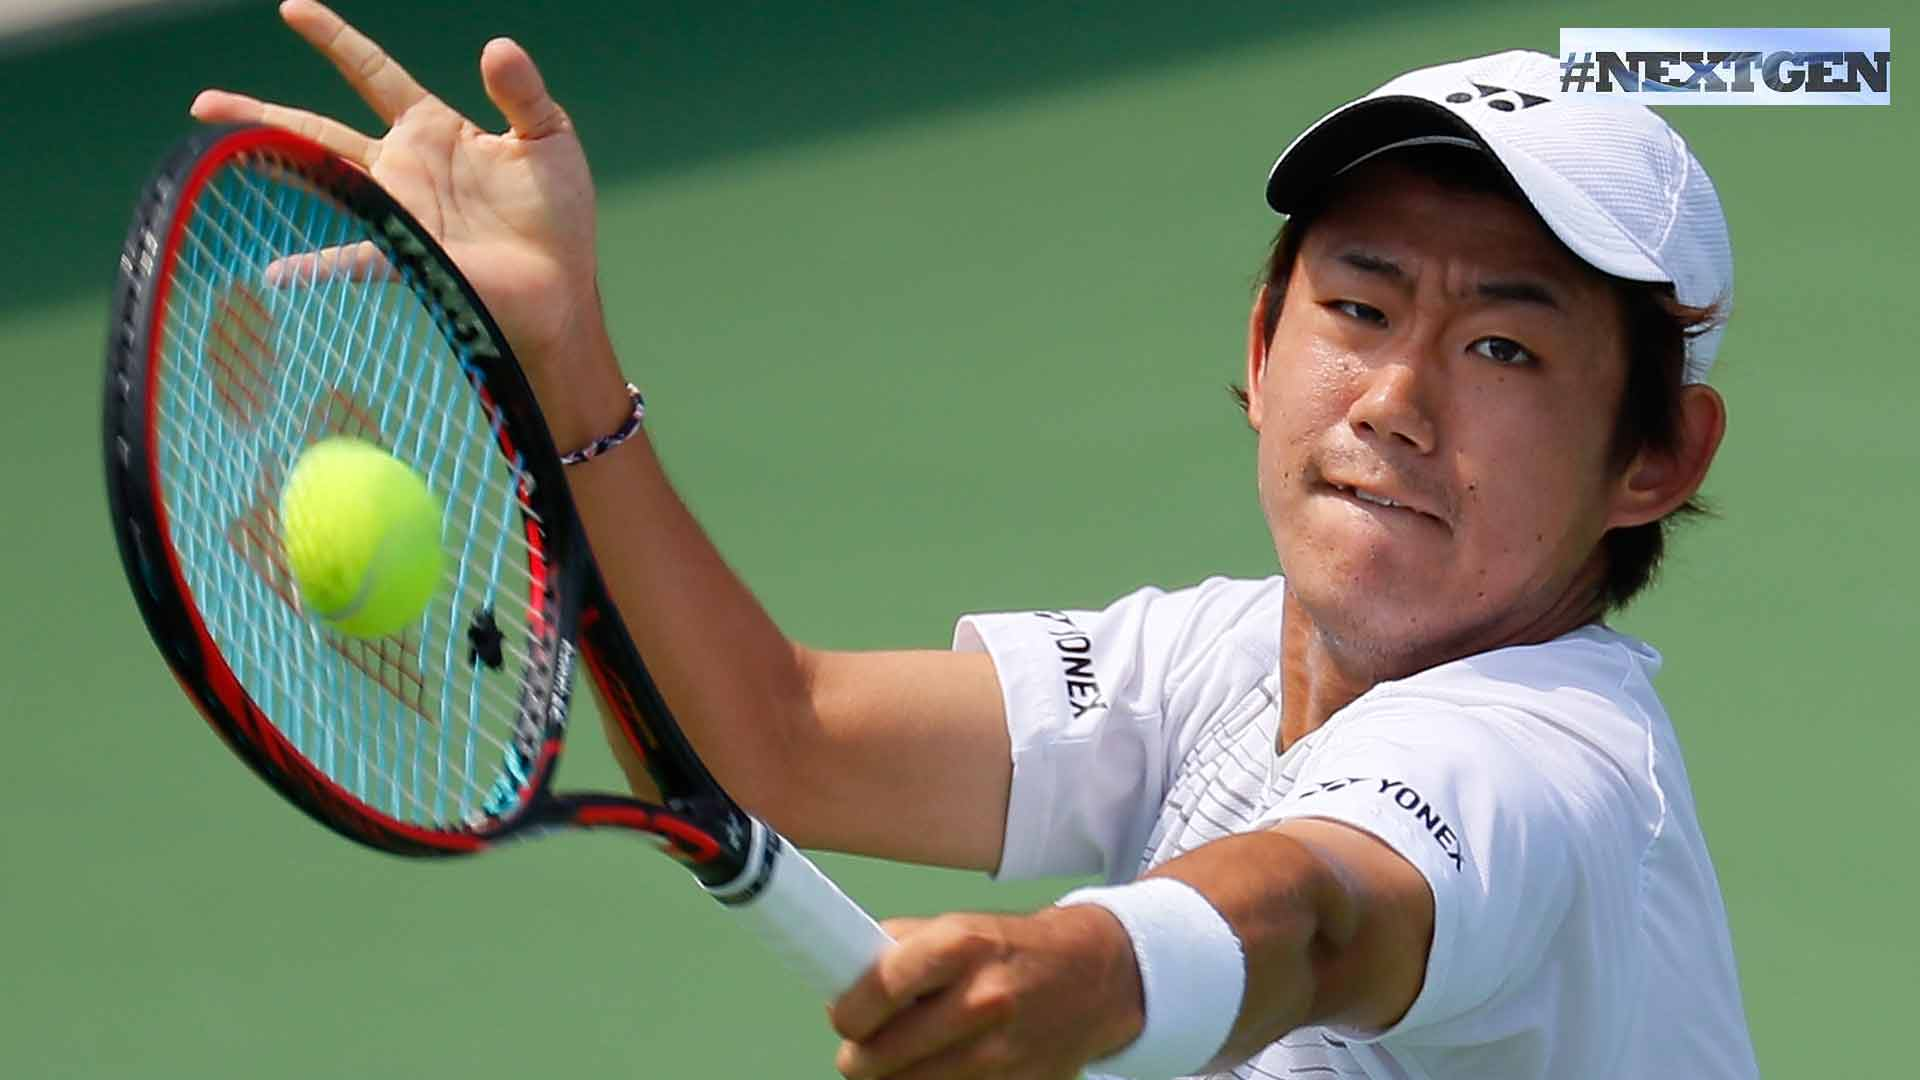 Yoshihito Nishioka advances to the semi-finals of the BB&T Atlanta Open on Friday.